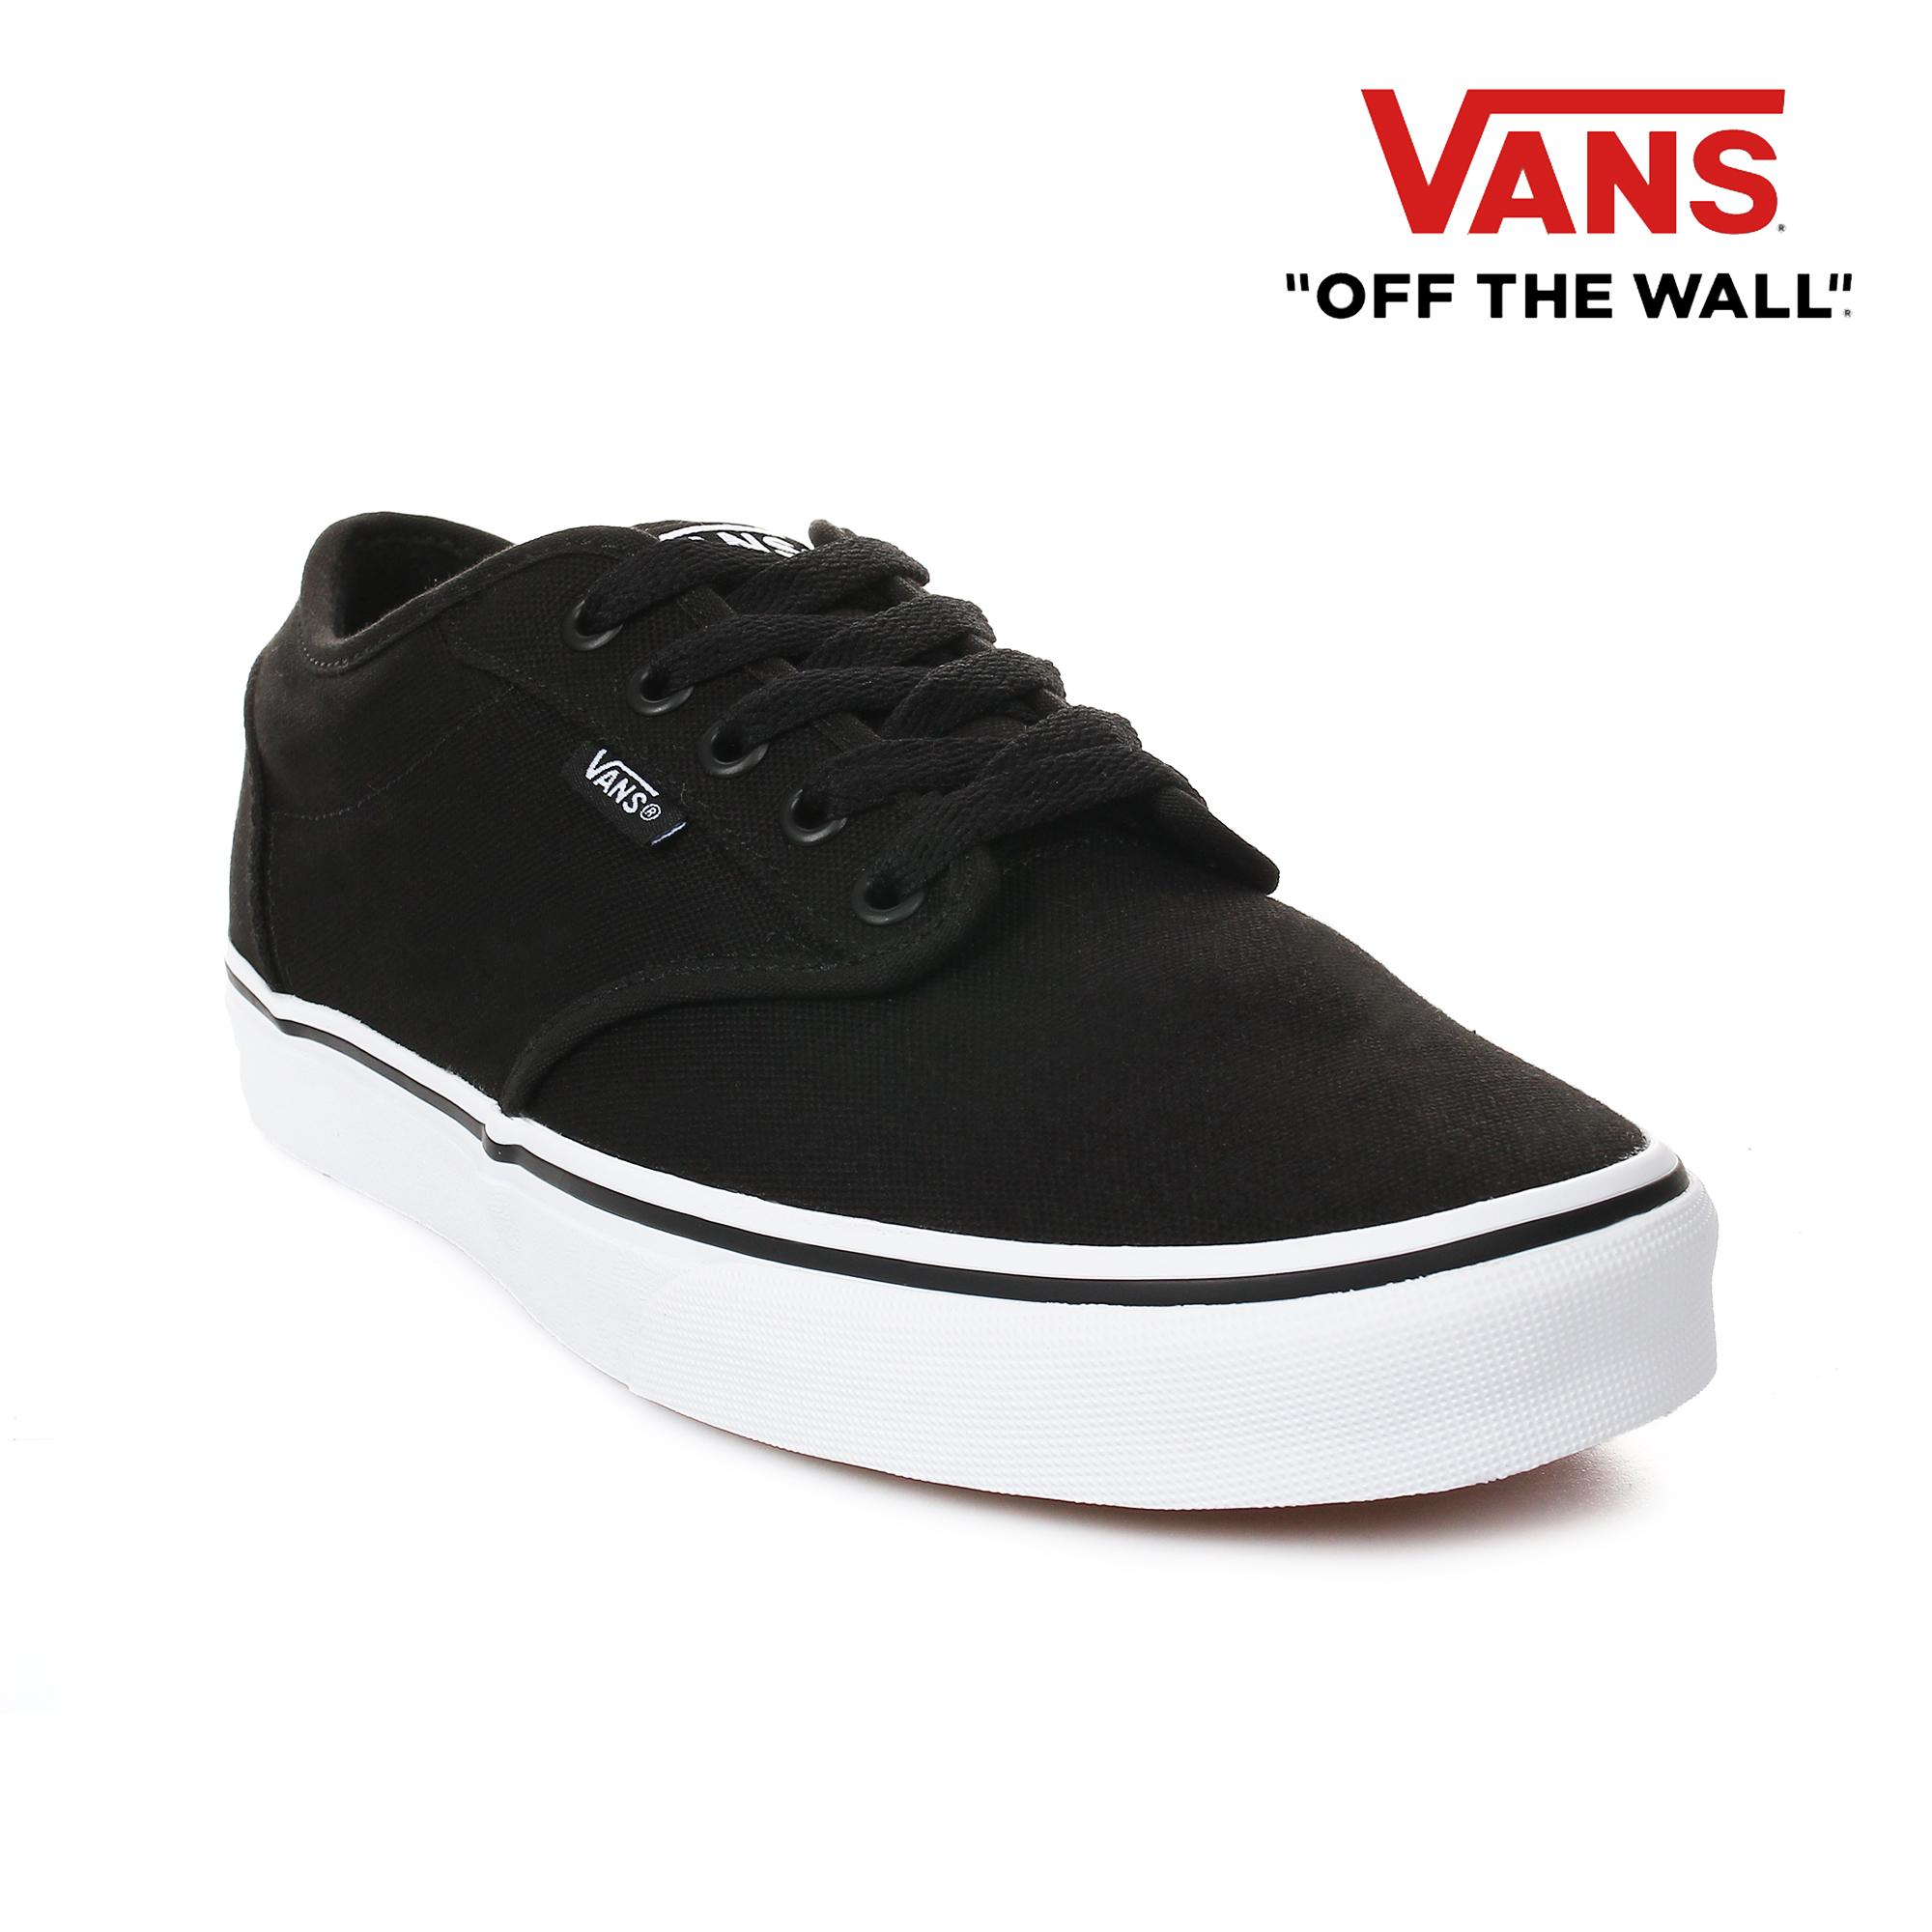 Vans Shoes for Men Philippines - Vans Men s Shoes for sale - prices ... 6bd01c71b